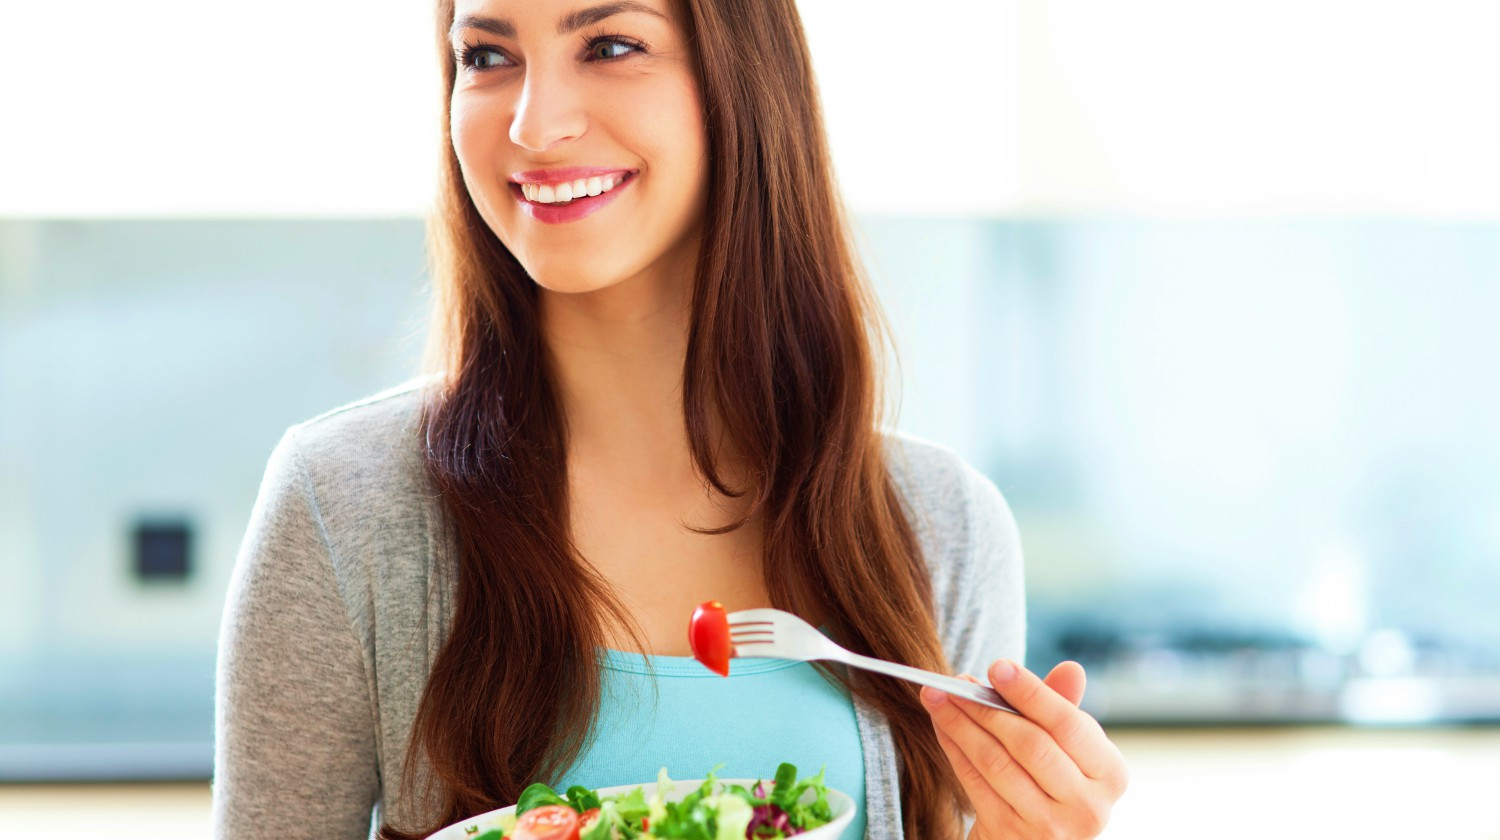 Featured | woman smiling eating salad | Intermittent Fasting Tips And Tricks For Better Results | intermittent fasting